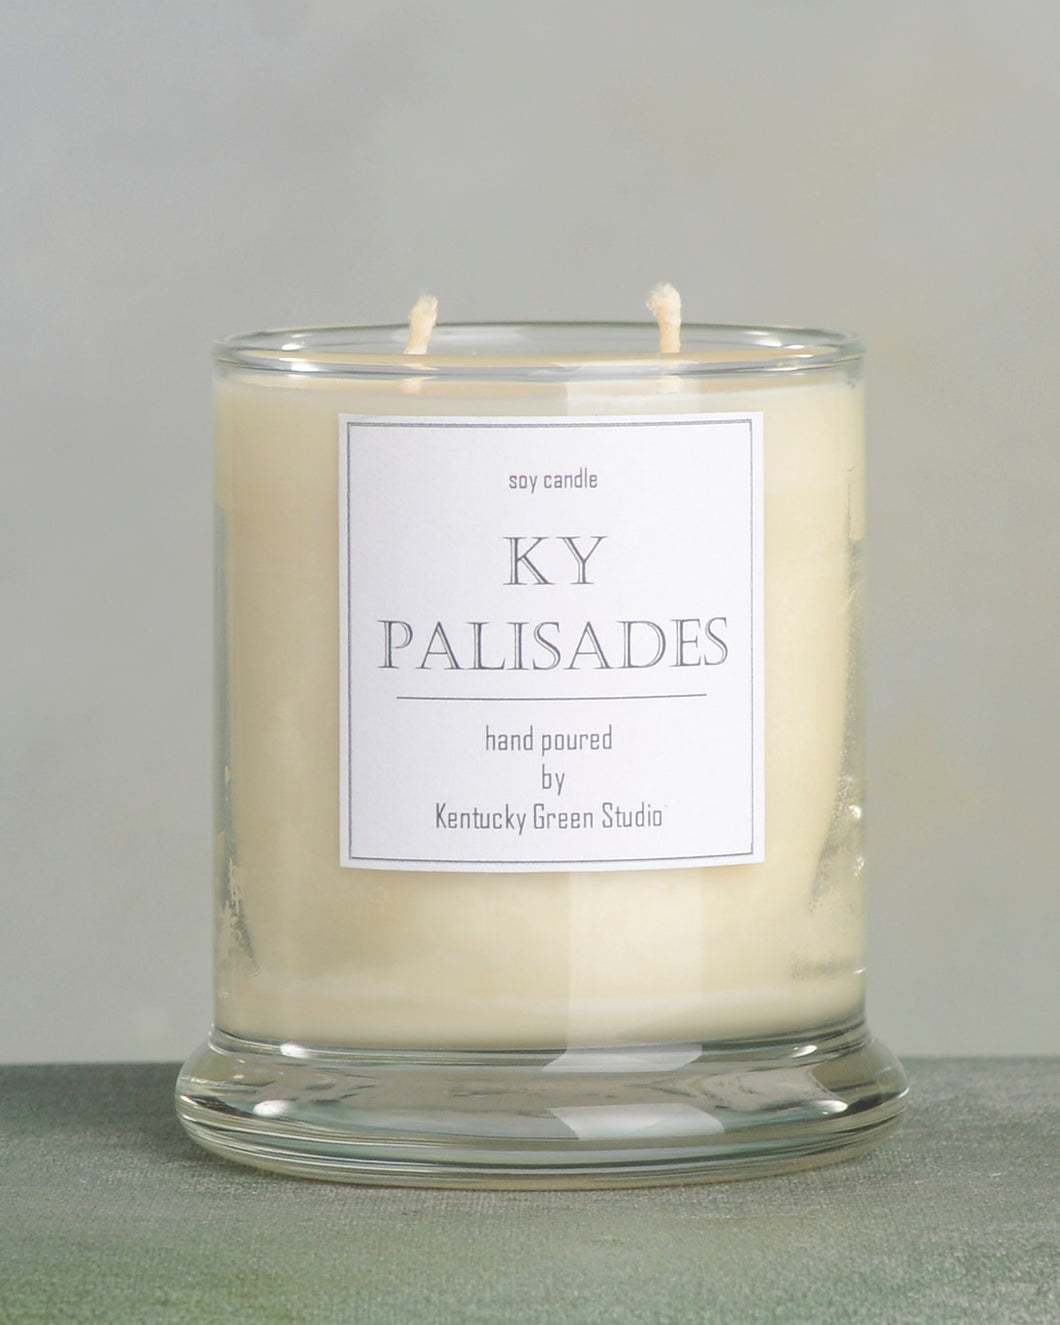 Kentucky Palisades Soy Candles in Lexington, Tennessee (TN) & (KY)